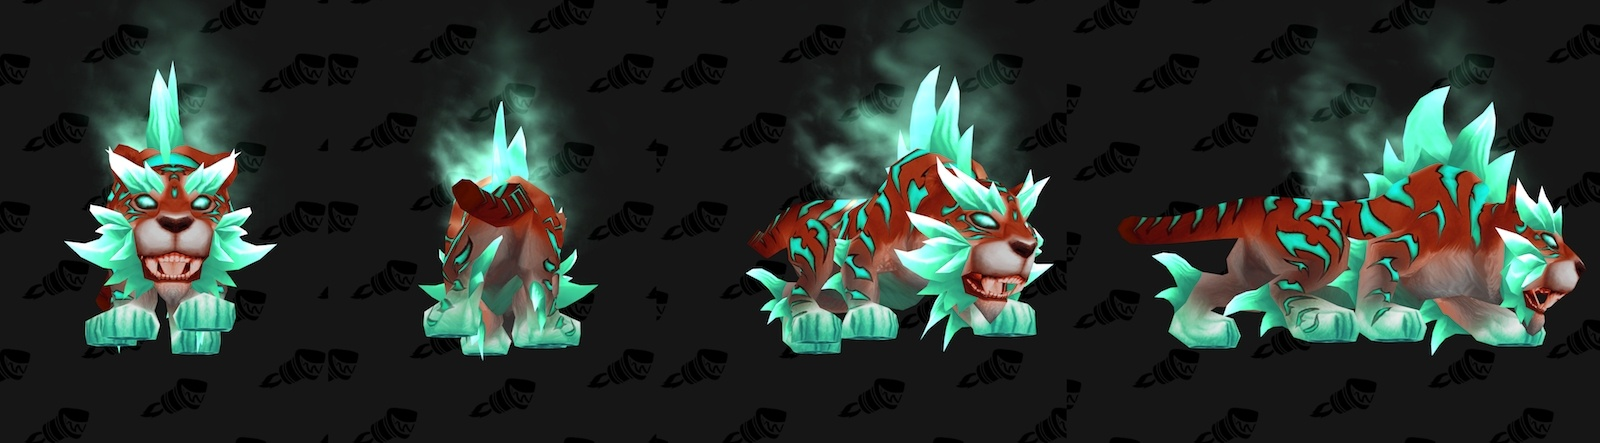 Battle pet updates in warlords of draenor guides wowhead.